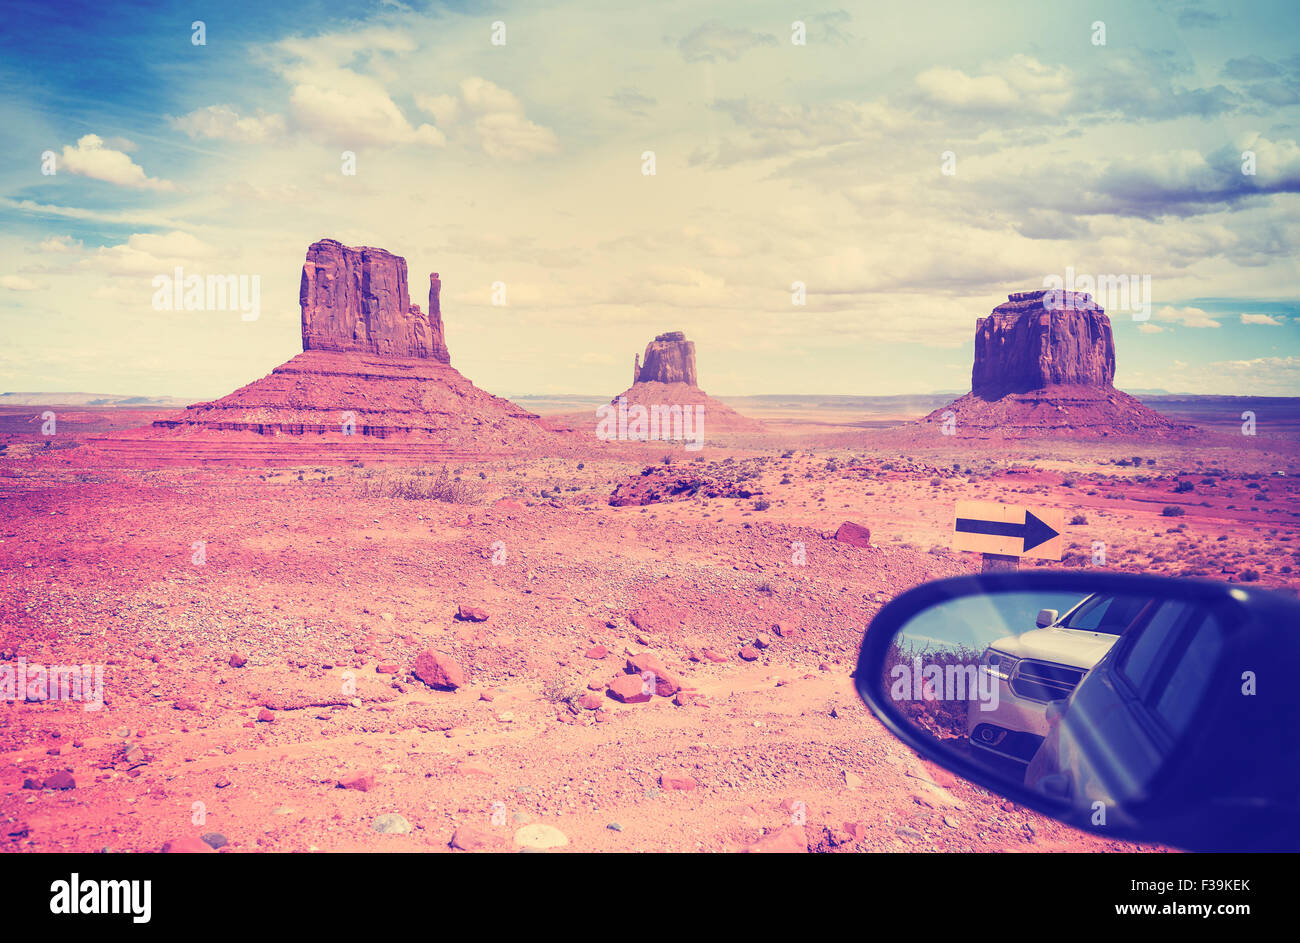 Vintage instagram style wing mirror in Monument Valley, USA. - Stock Image